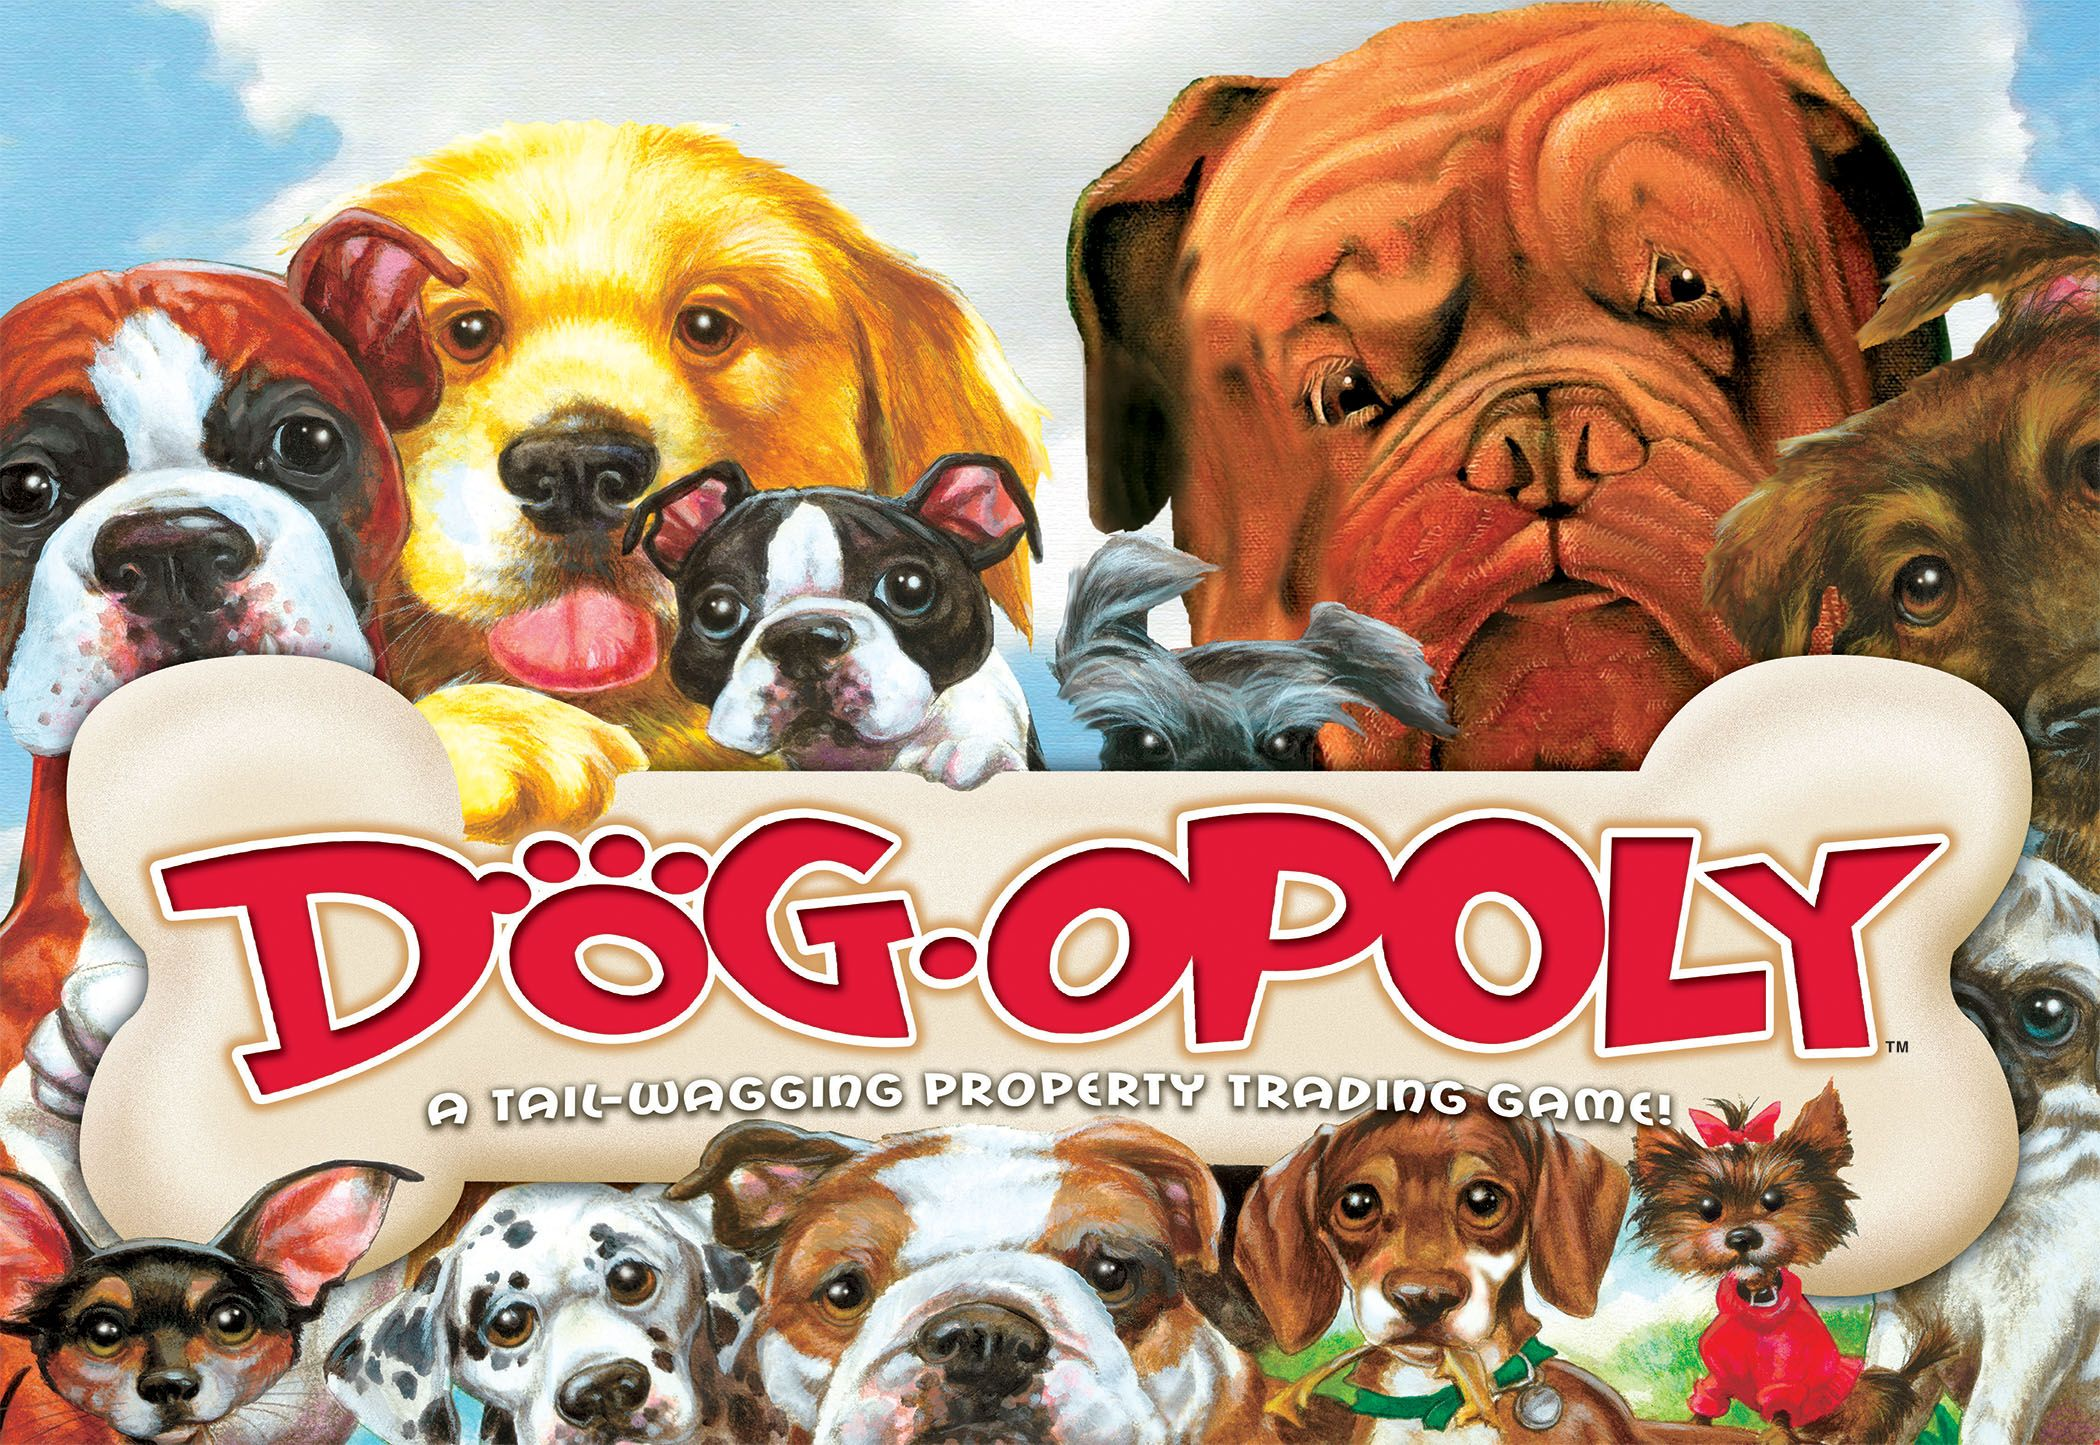 Dogopoly is tailwagging fun until you end up in the